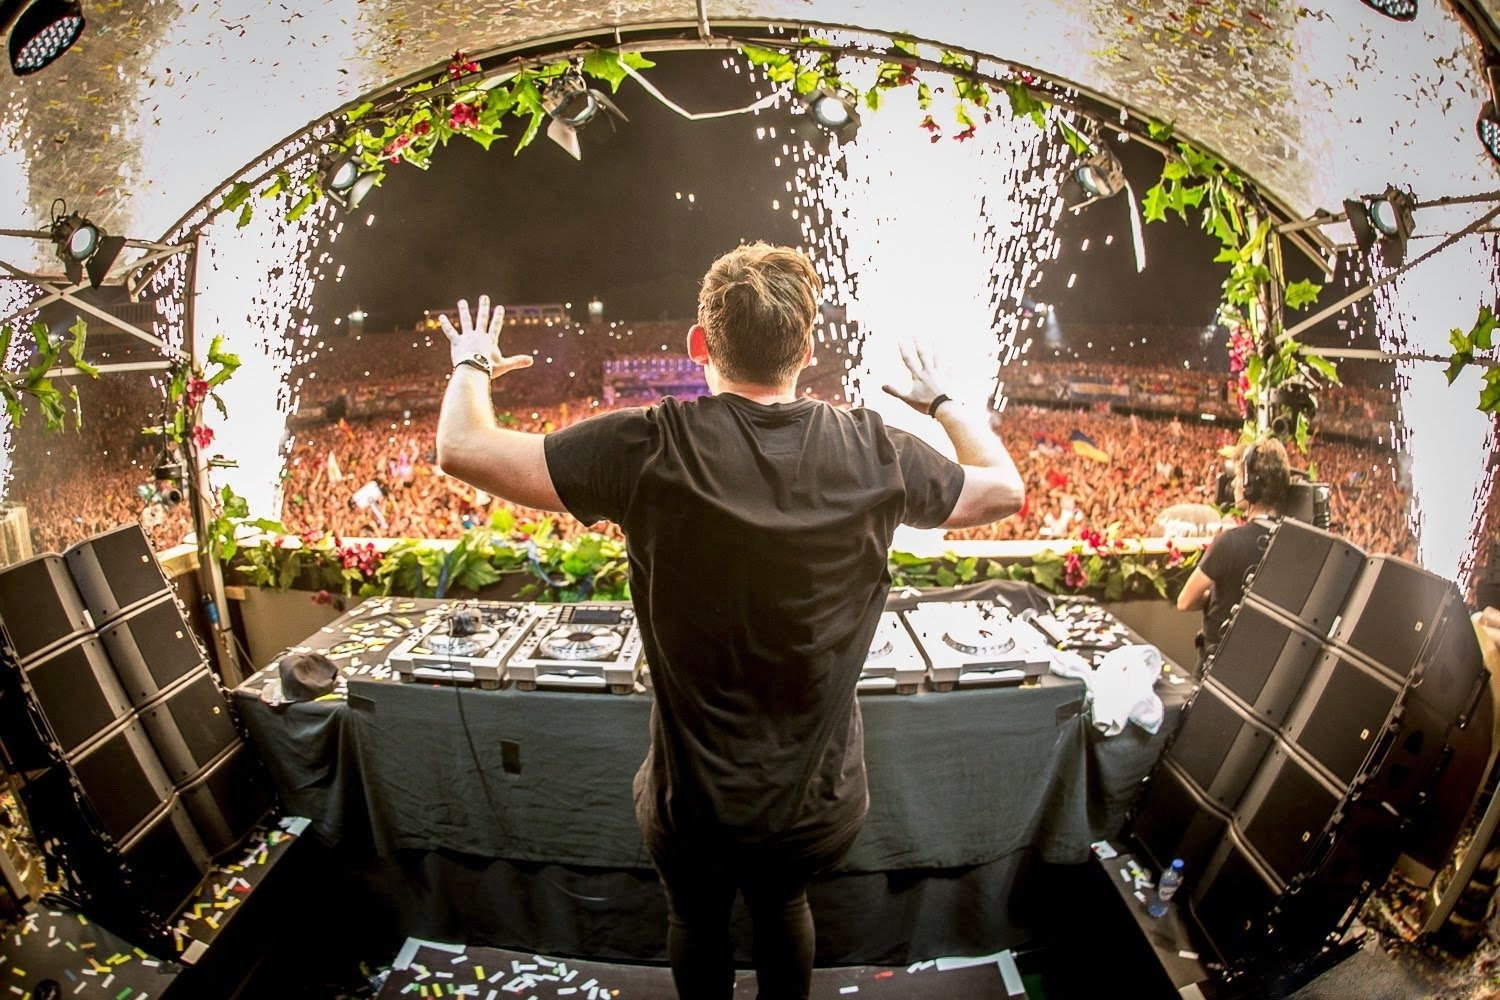 Music - Hardwell  DJ Tomorrowland Wallpaper